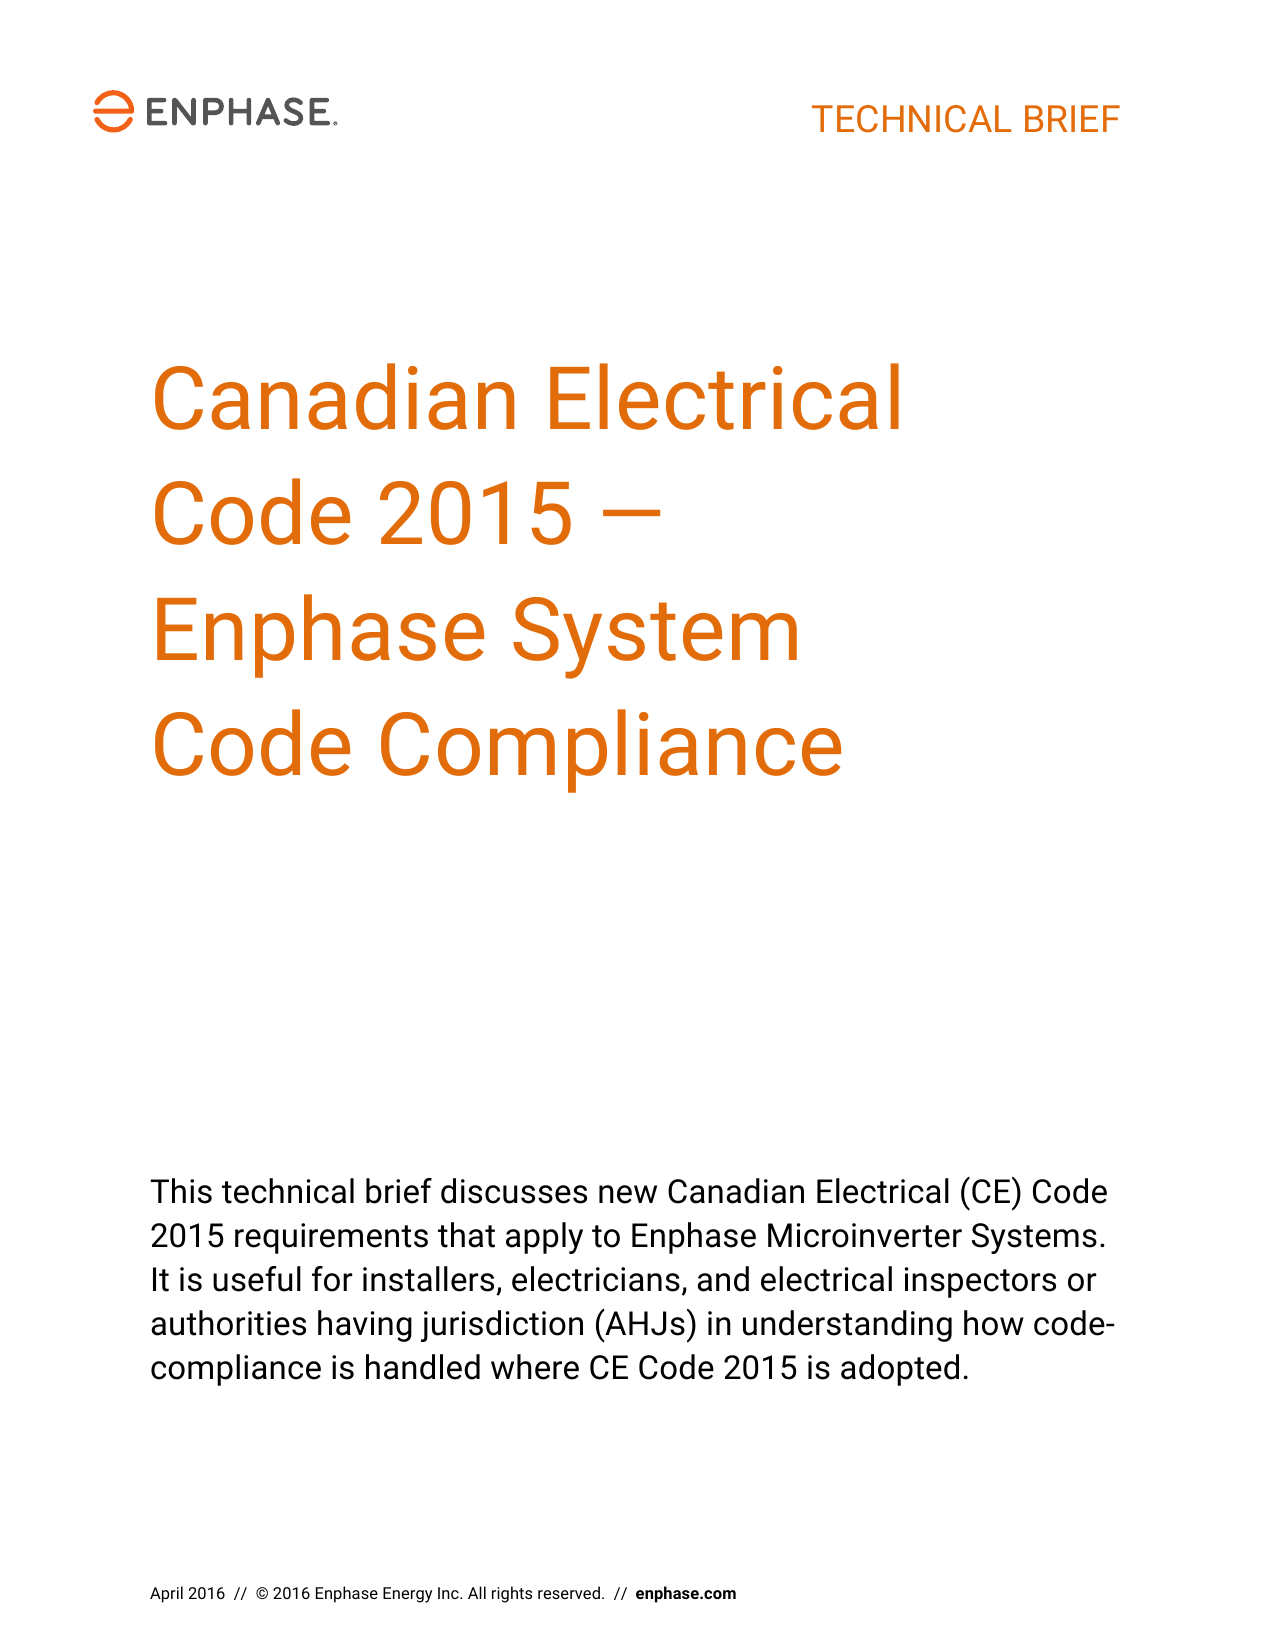 Magnificent canadian electrical code for dummies model electrical nice canadian electrical code for dummies ideas the best greentooth Choice Image